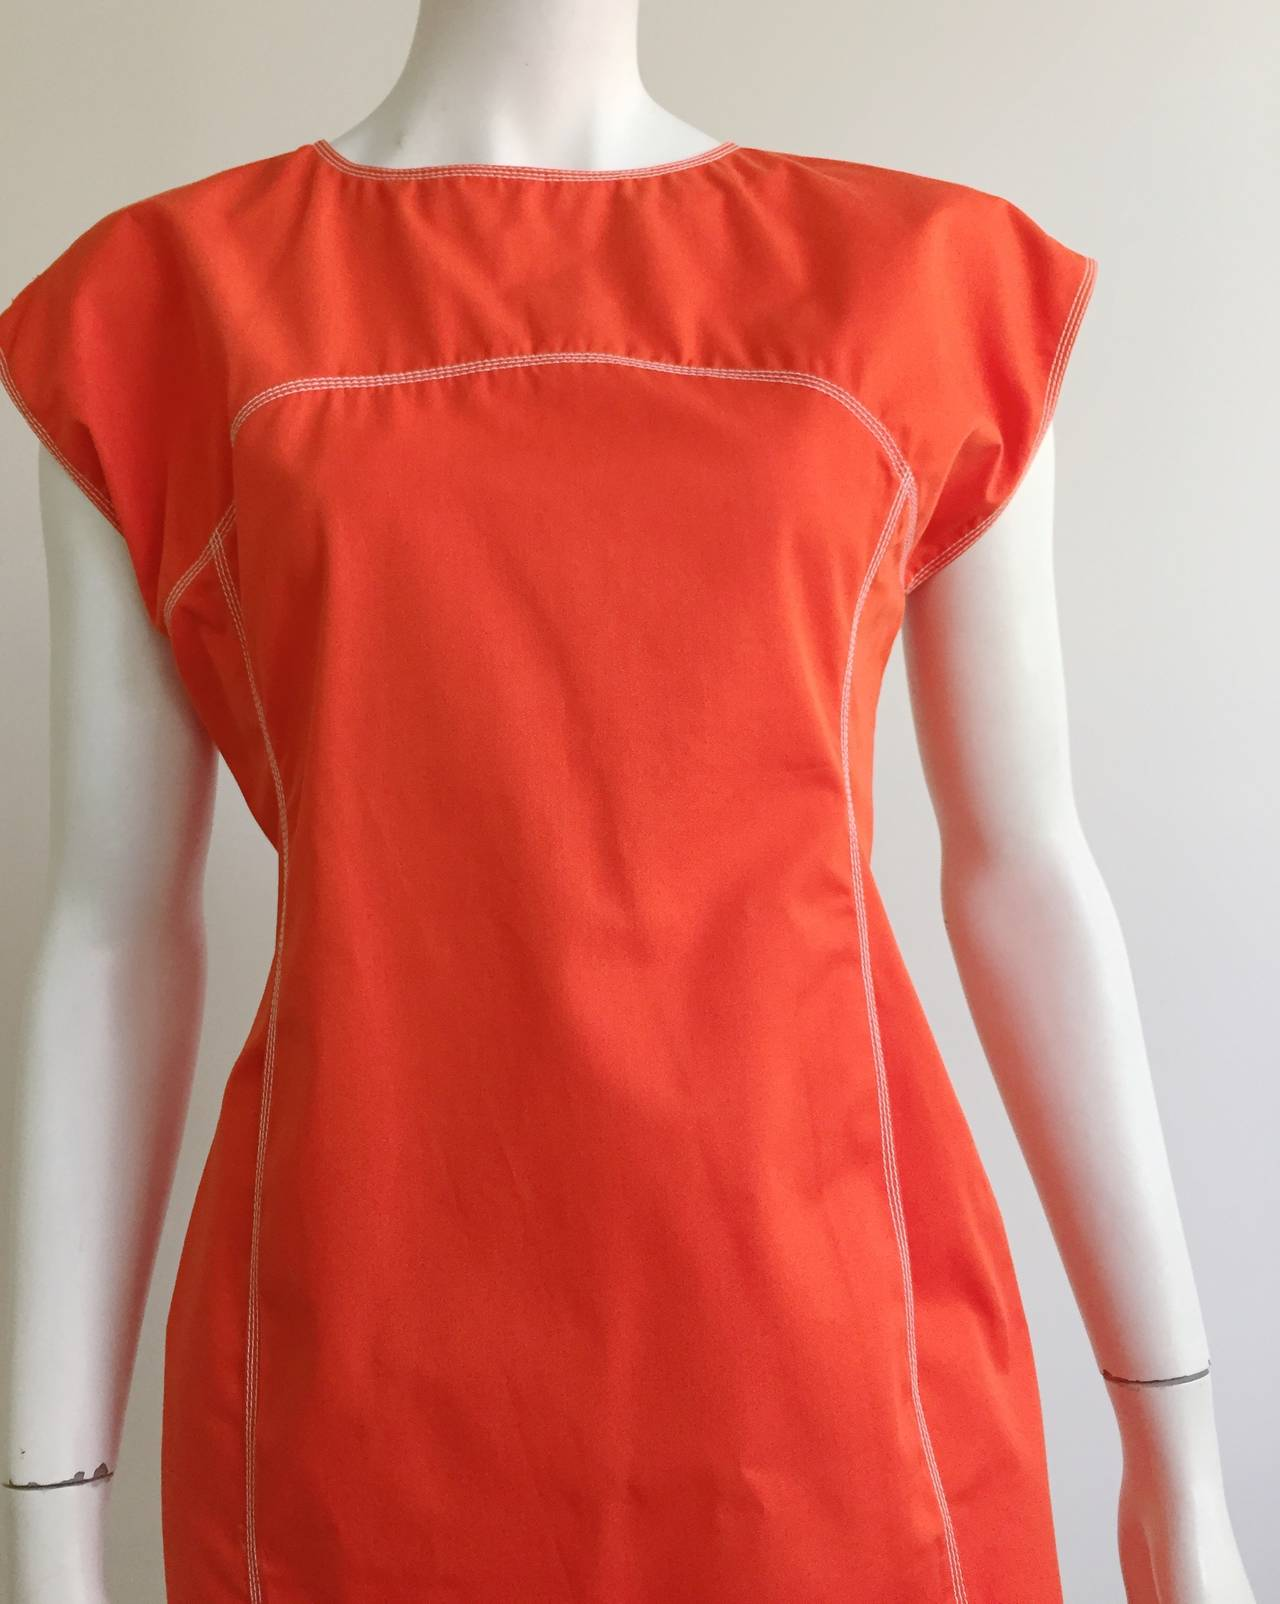 Red Courreges Paris Dress With Pockets Size 8, 1980s For Sale